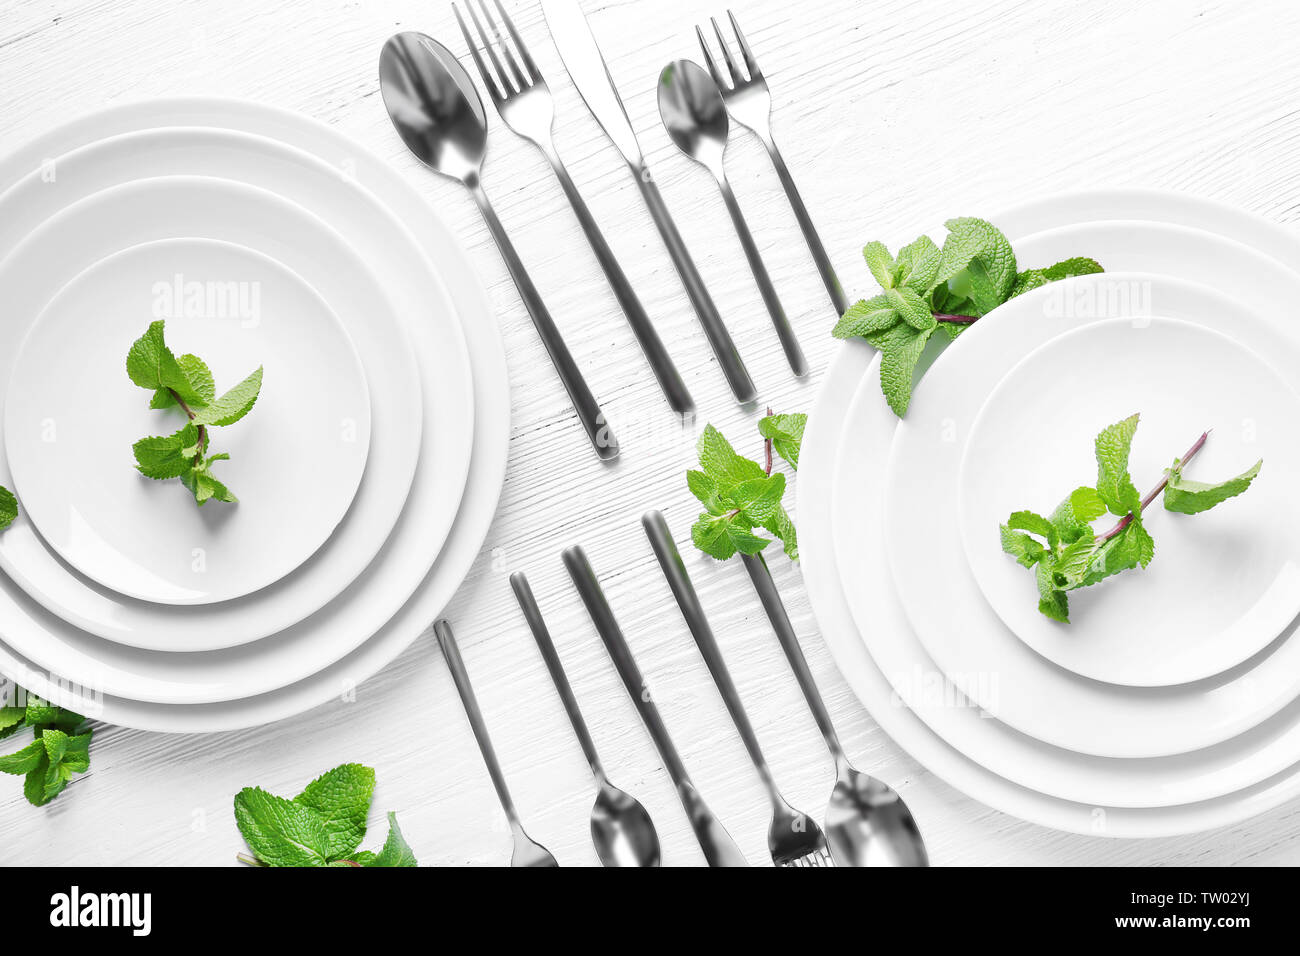 Cutlery set with plates on white wooden table - Stock Image